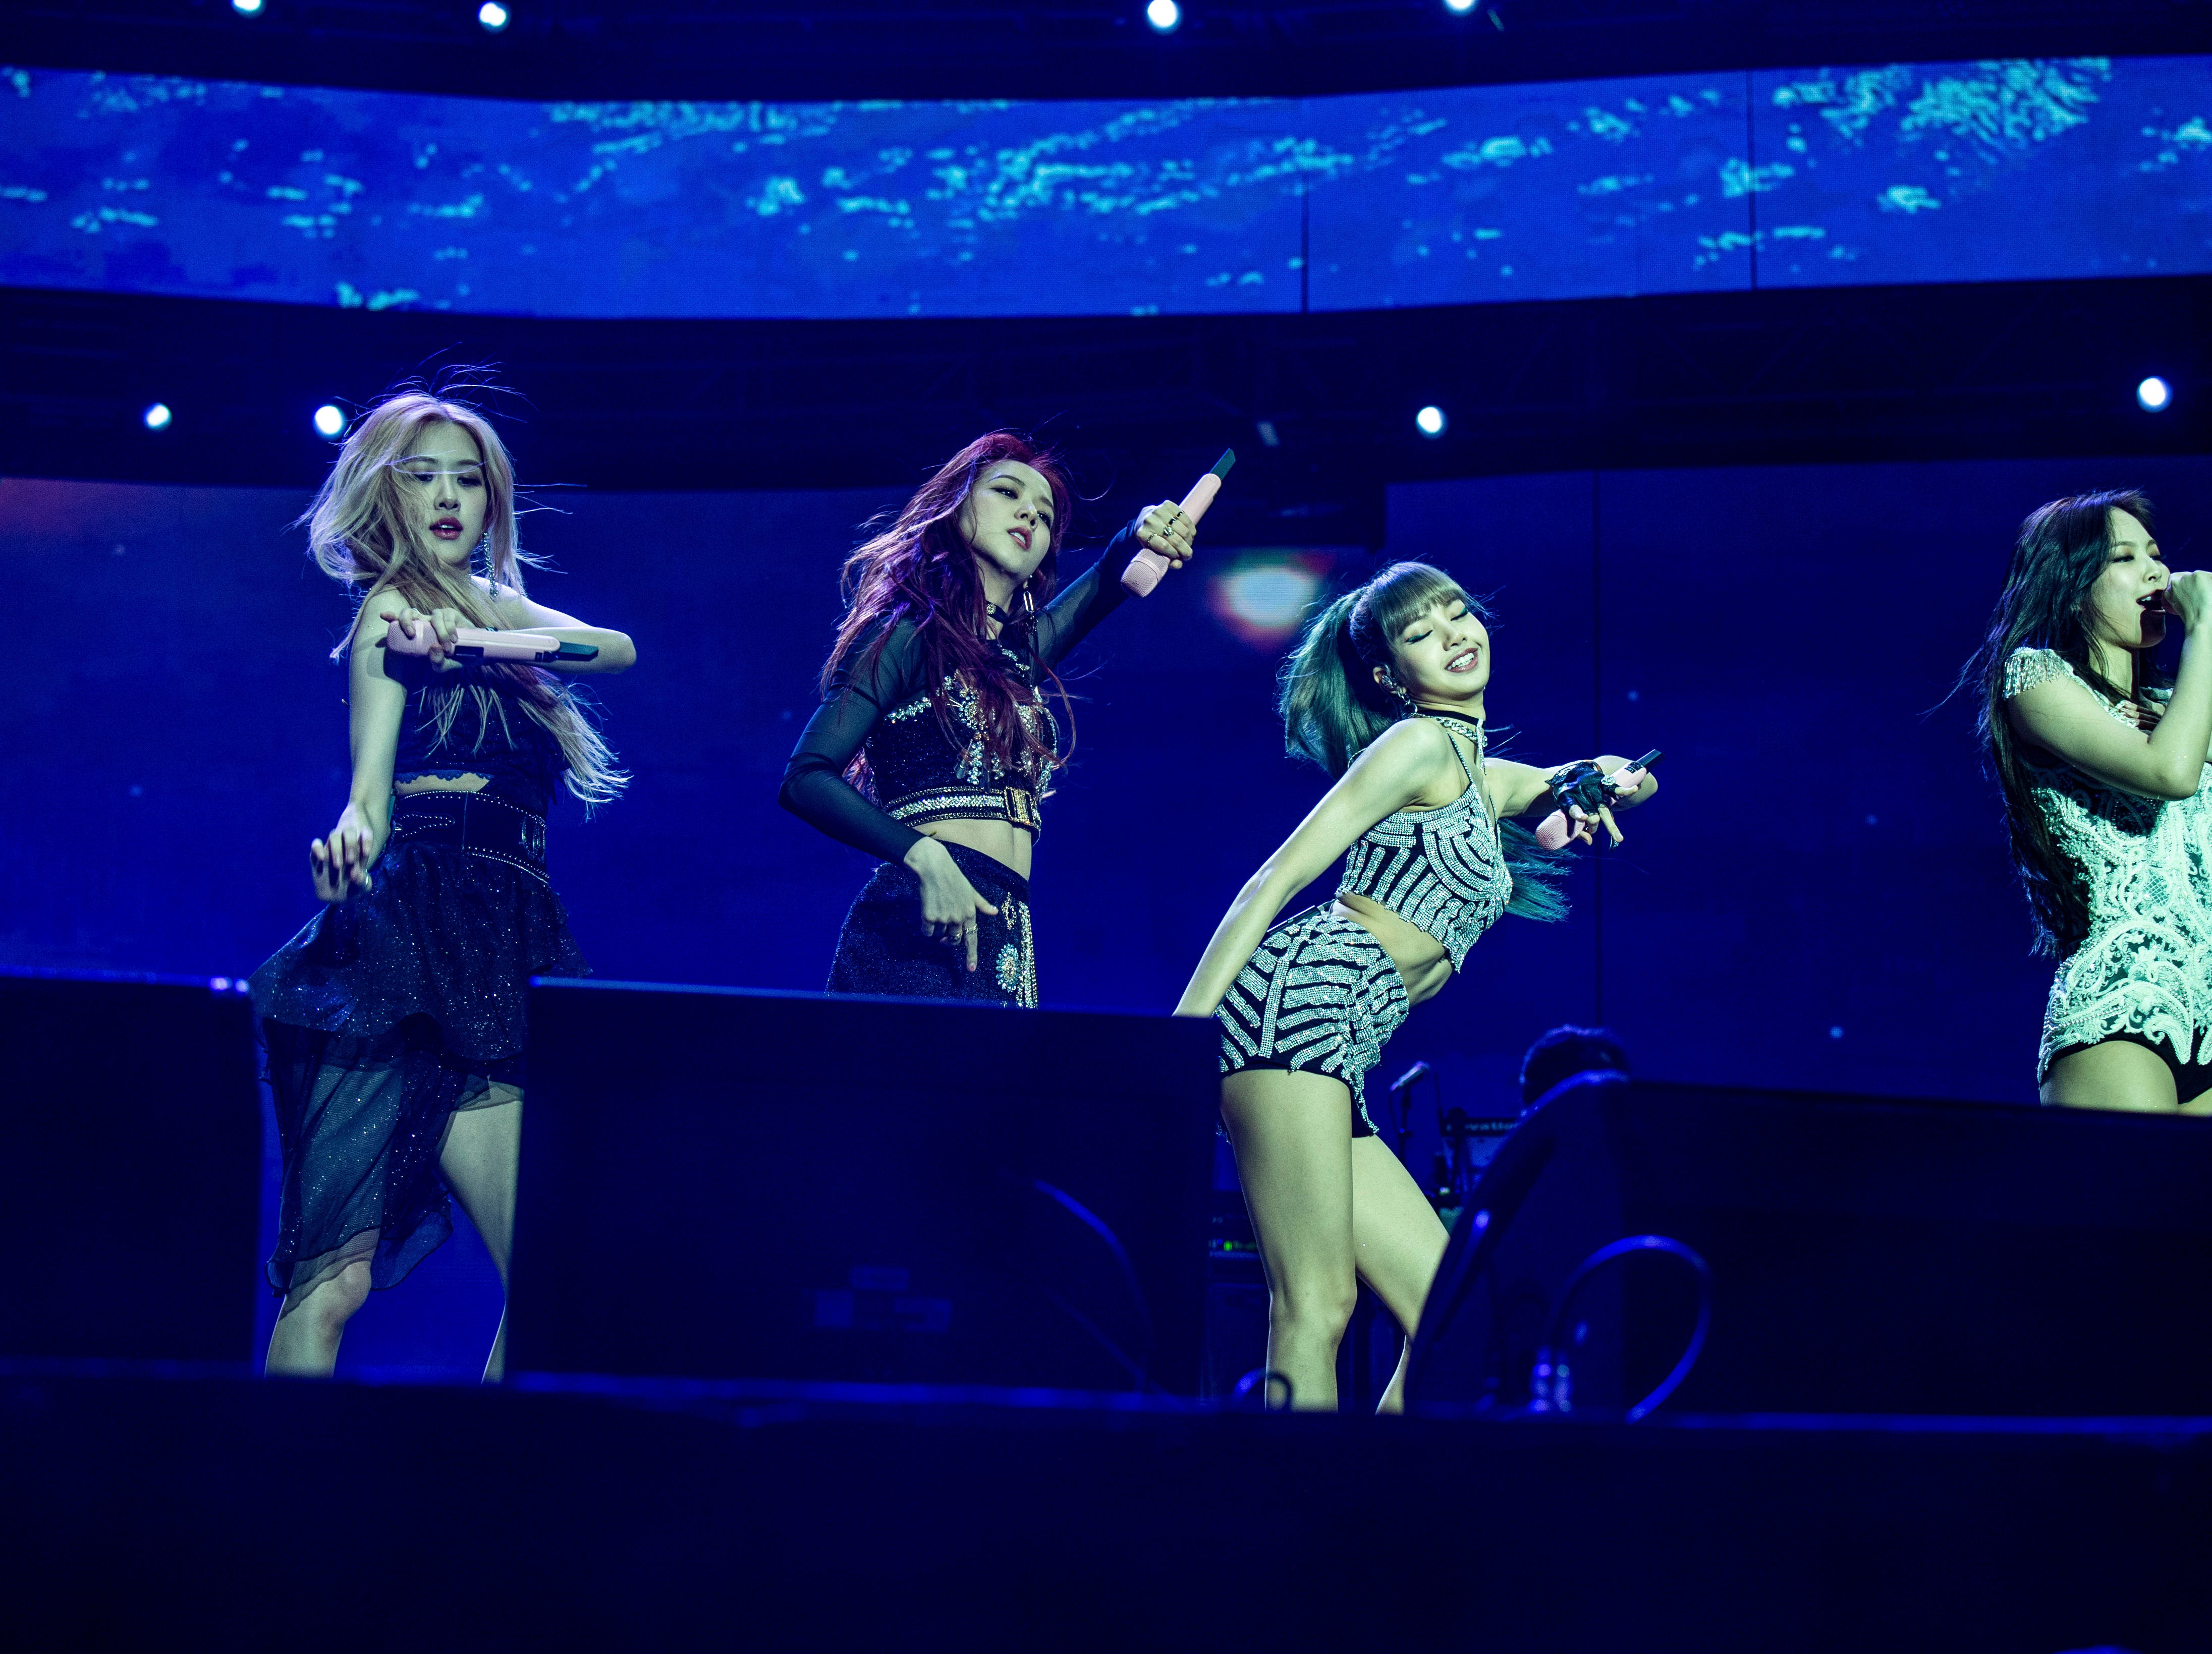 Rose, from left, Jisoo, Lisa, and Jennie Kim of BLACKPINK perform at the Coachella Music & Arts Festival at the Empire Polo Club on Friday, April 12, 2019, in Indio, Calif.